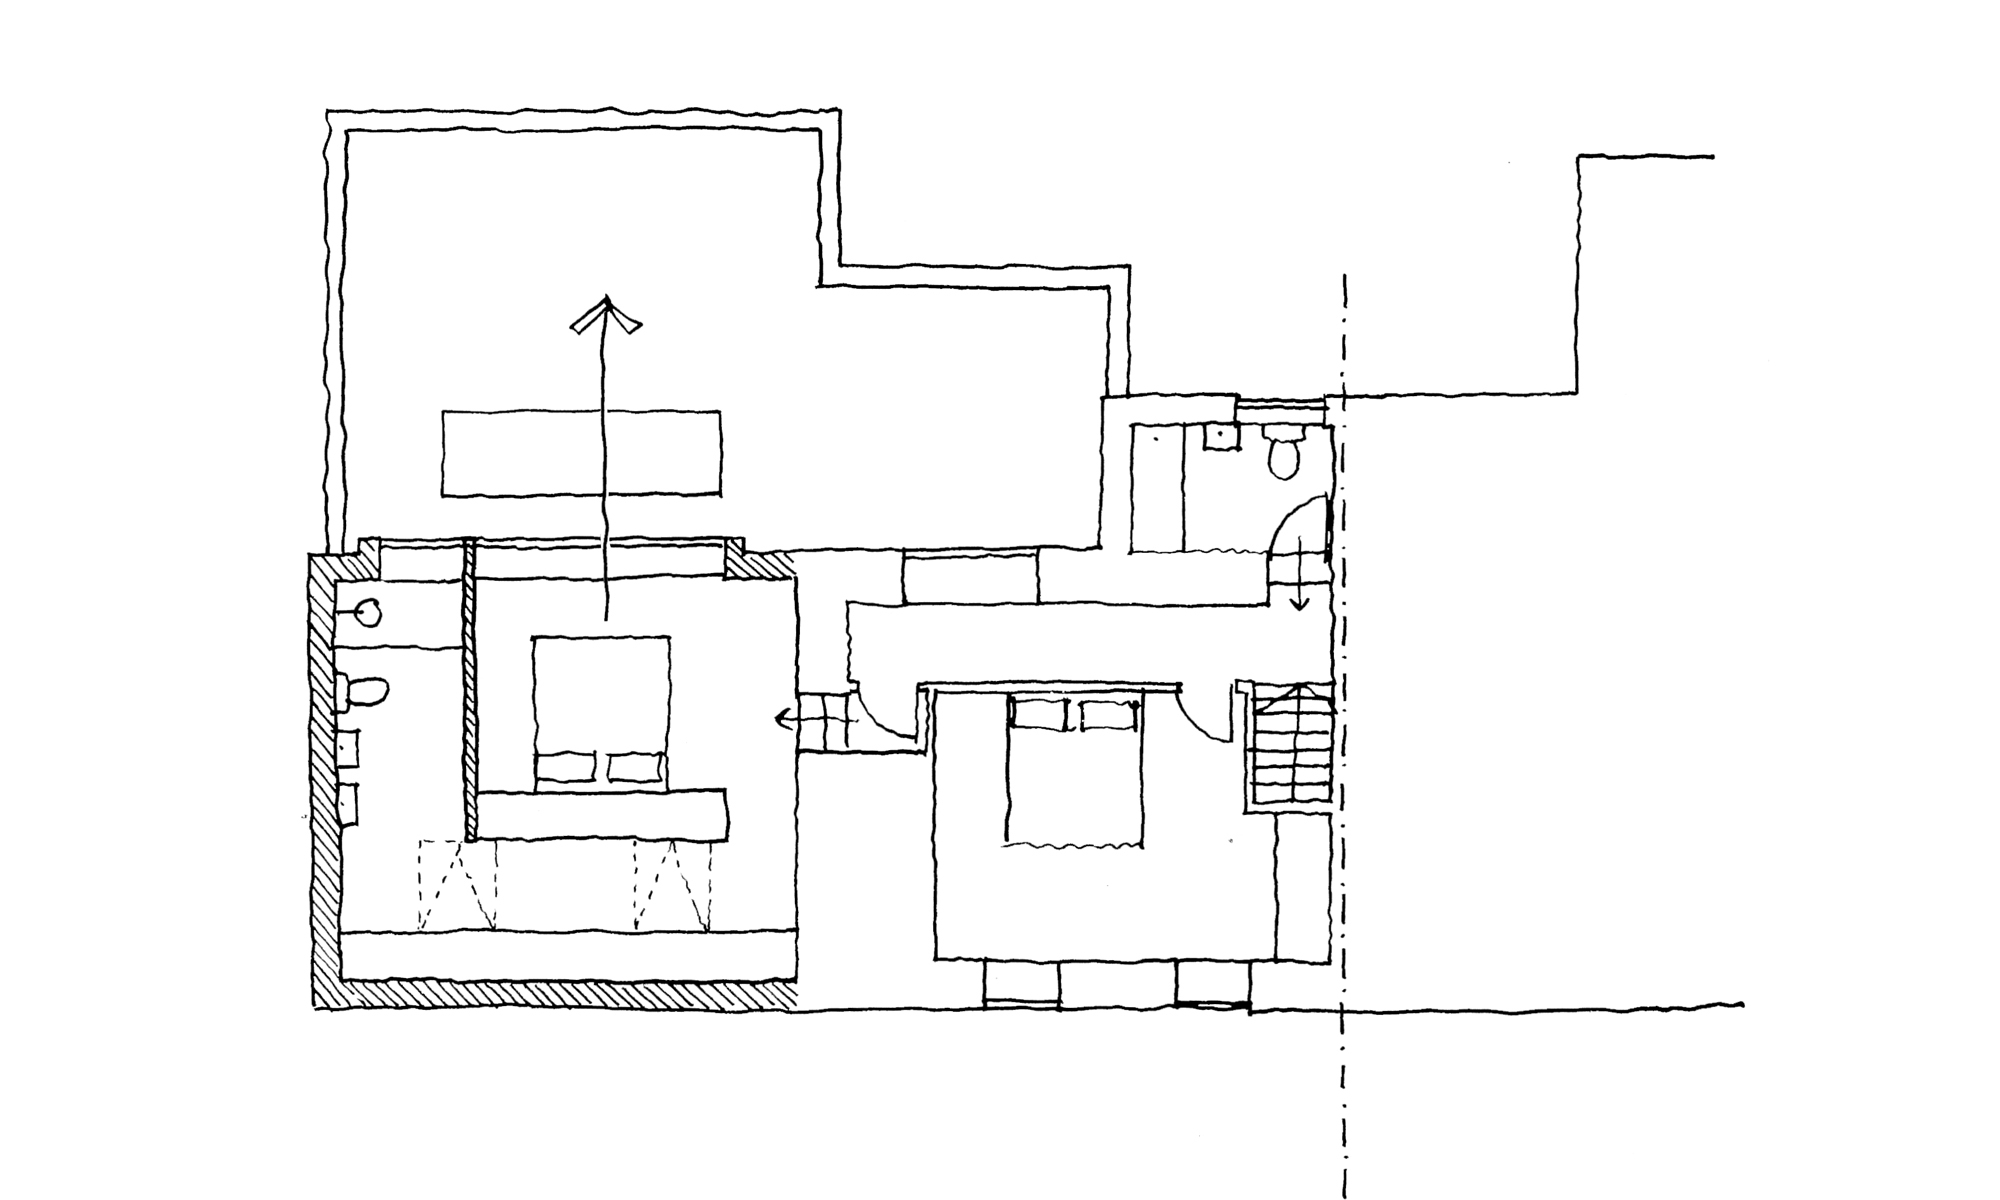 WEST COTTAGE EXTENSION SKETCH